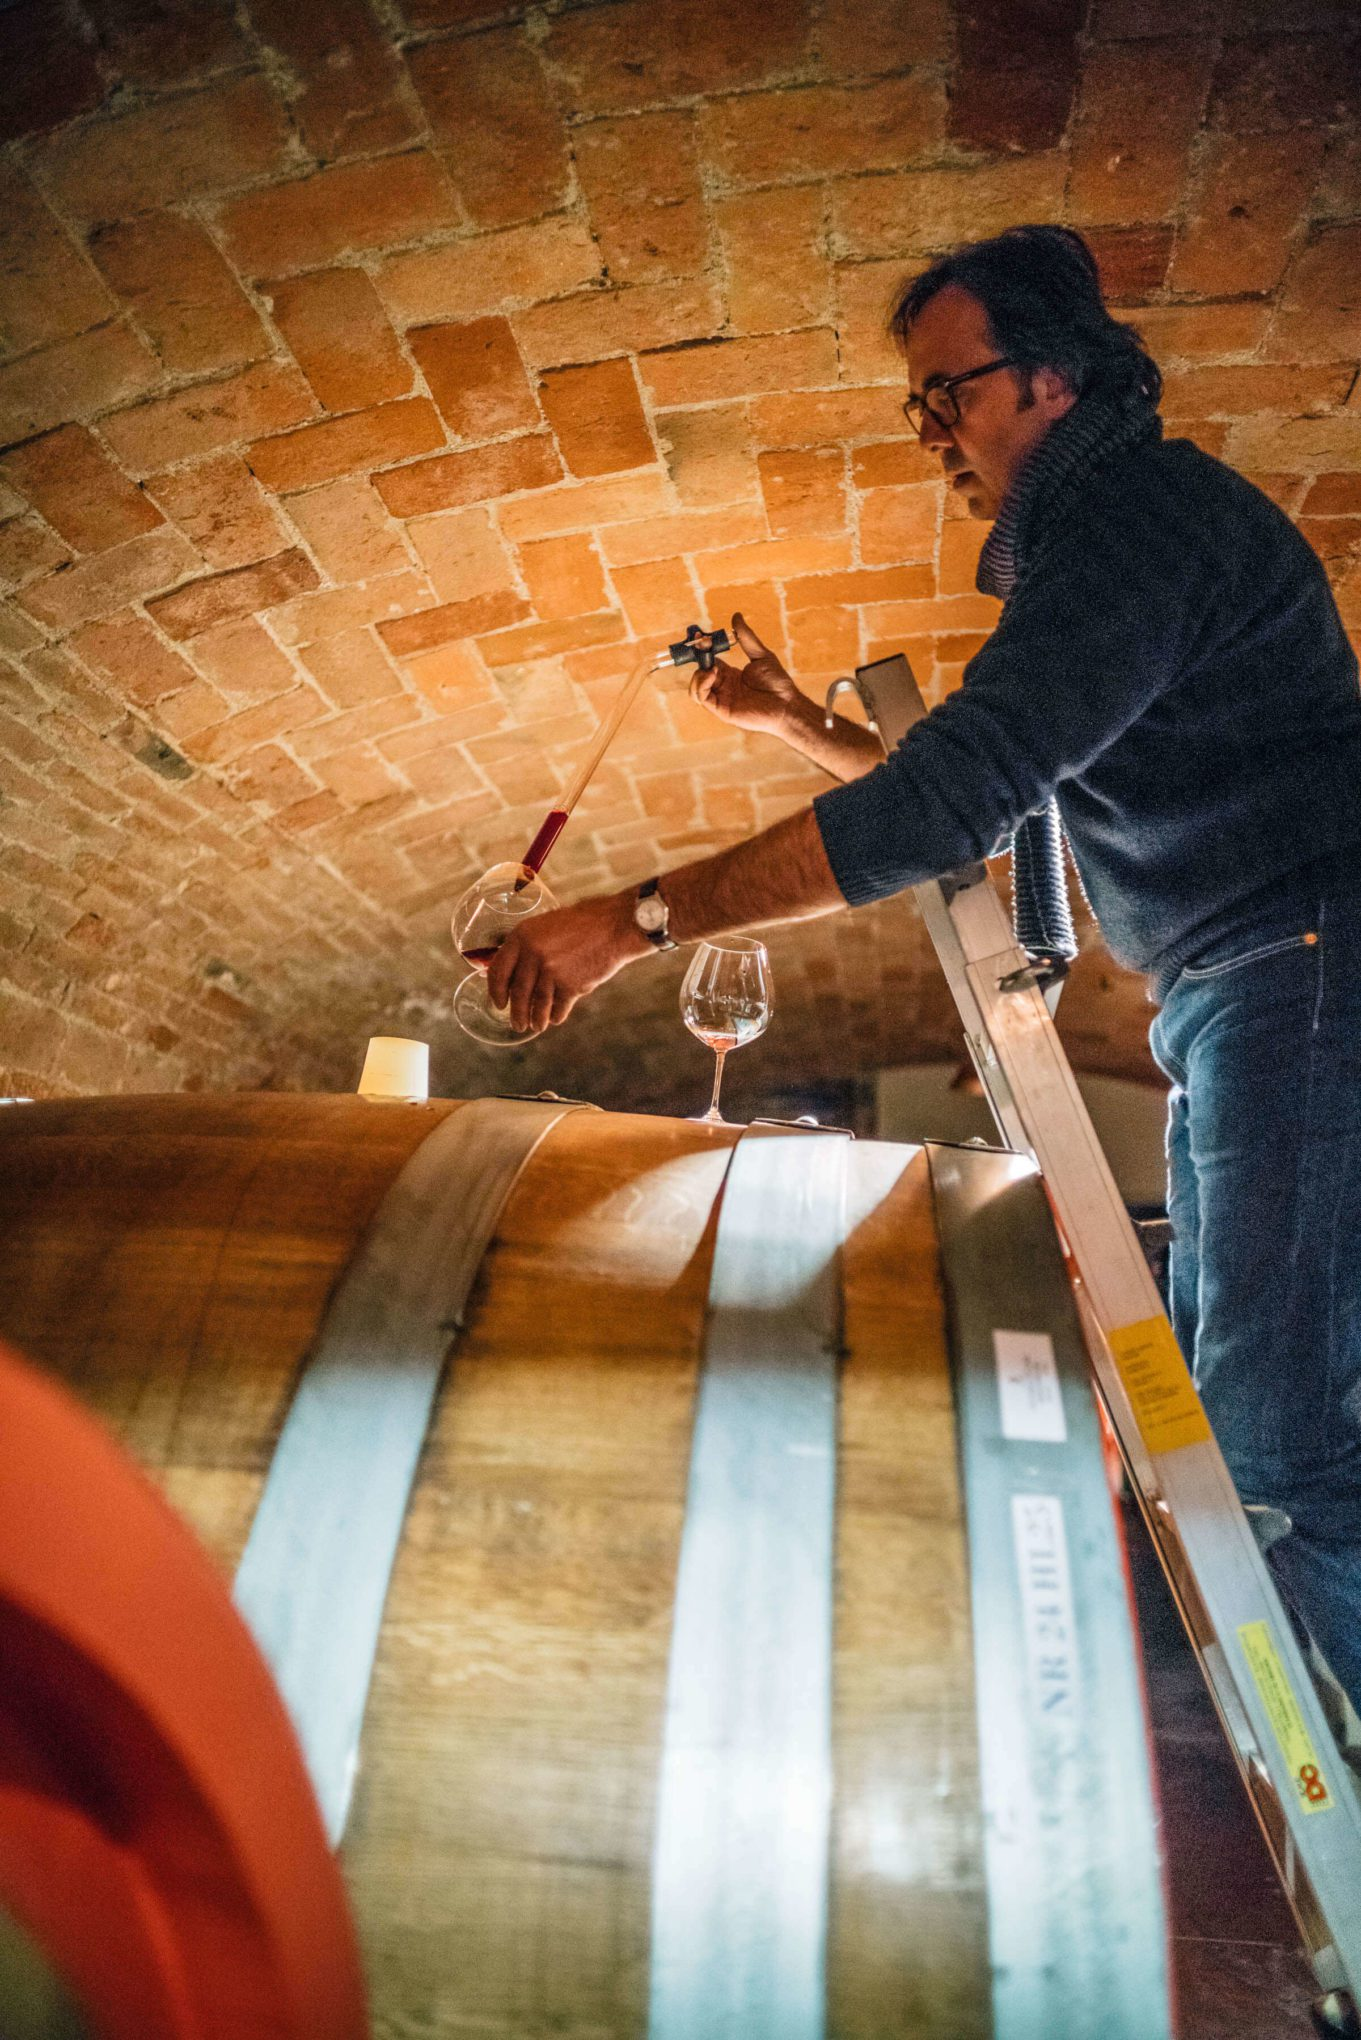 Do you love Barolo wine? Winemaker Mario Fontana gives us a barrel tasting of his traditional and natural wine in Barolo Piedmont Italy